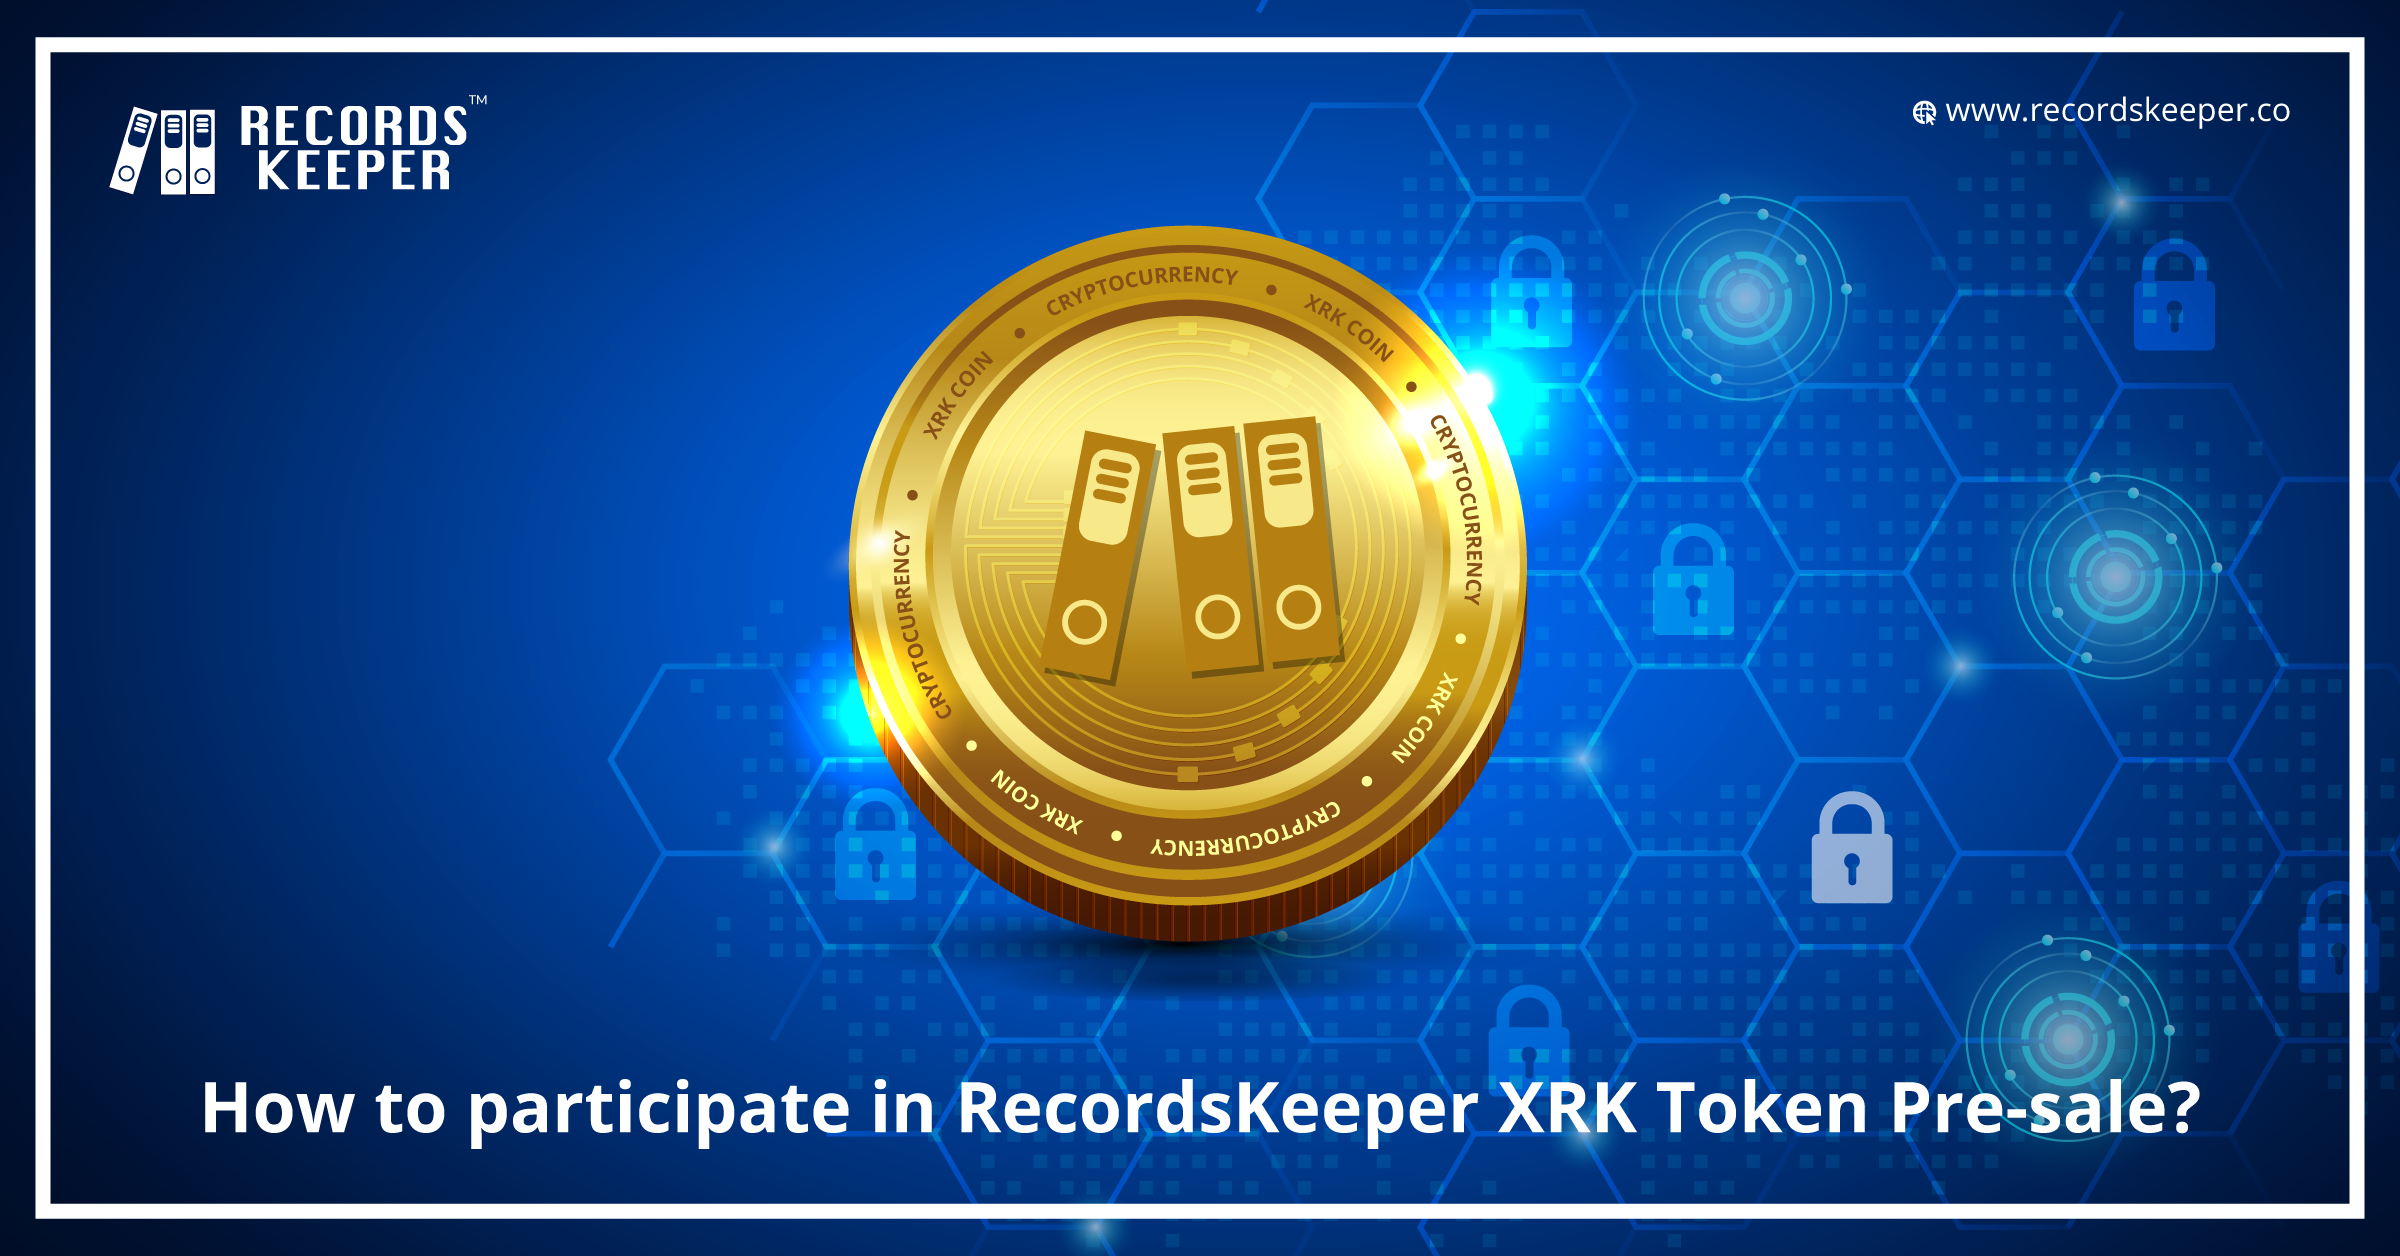 How to Participate in RecordsKeeper XRK TokenPre-Sale